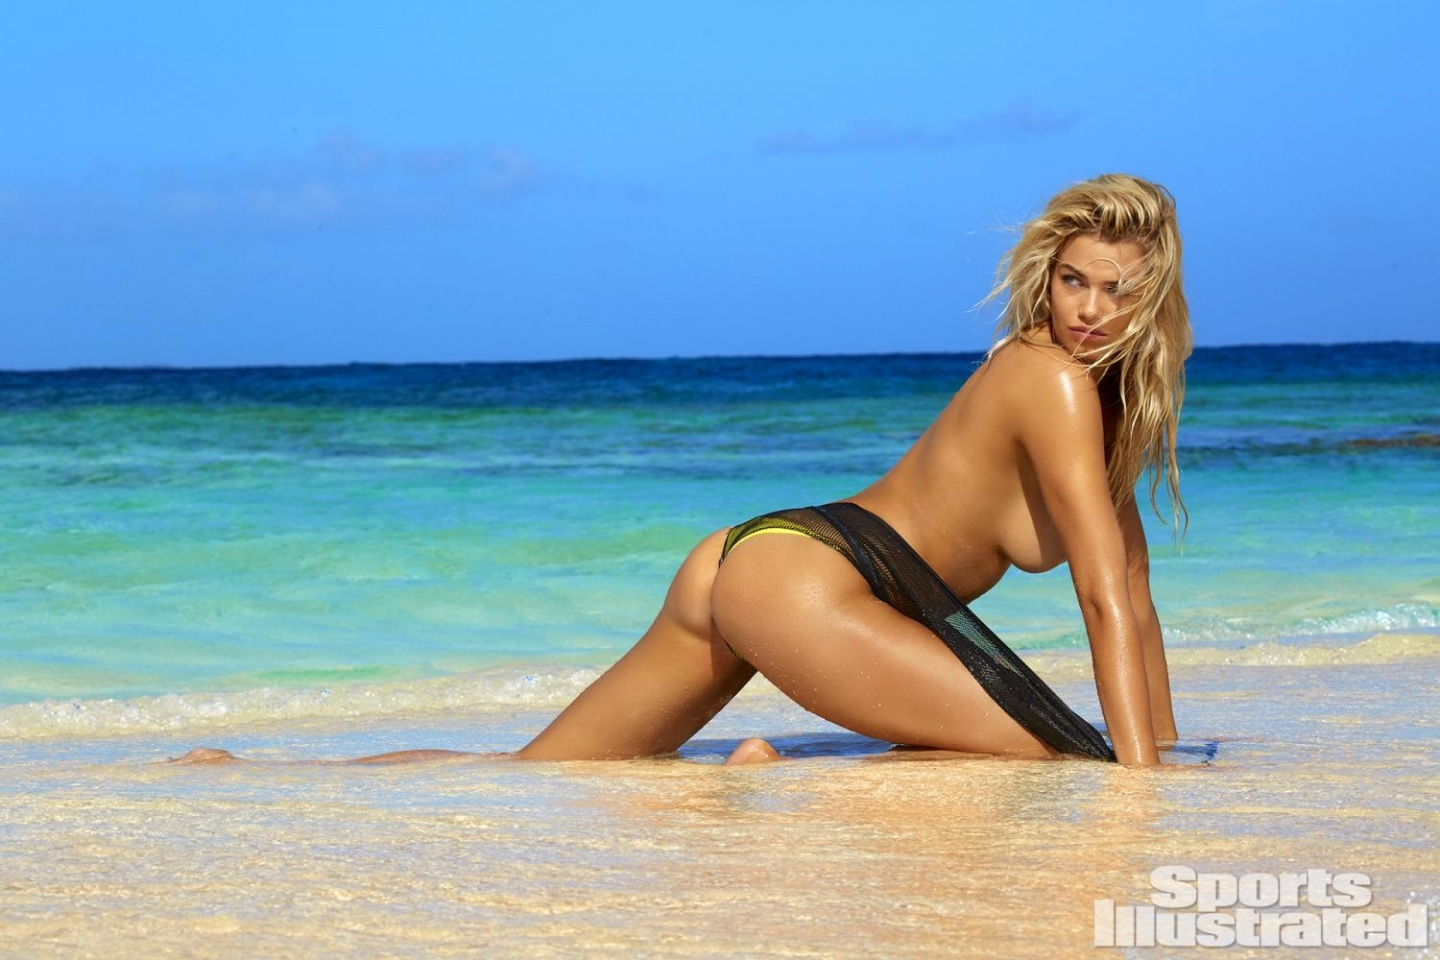 Hailey Clauson Sports Illustrated Hailey Clauson